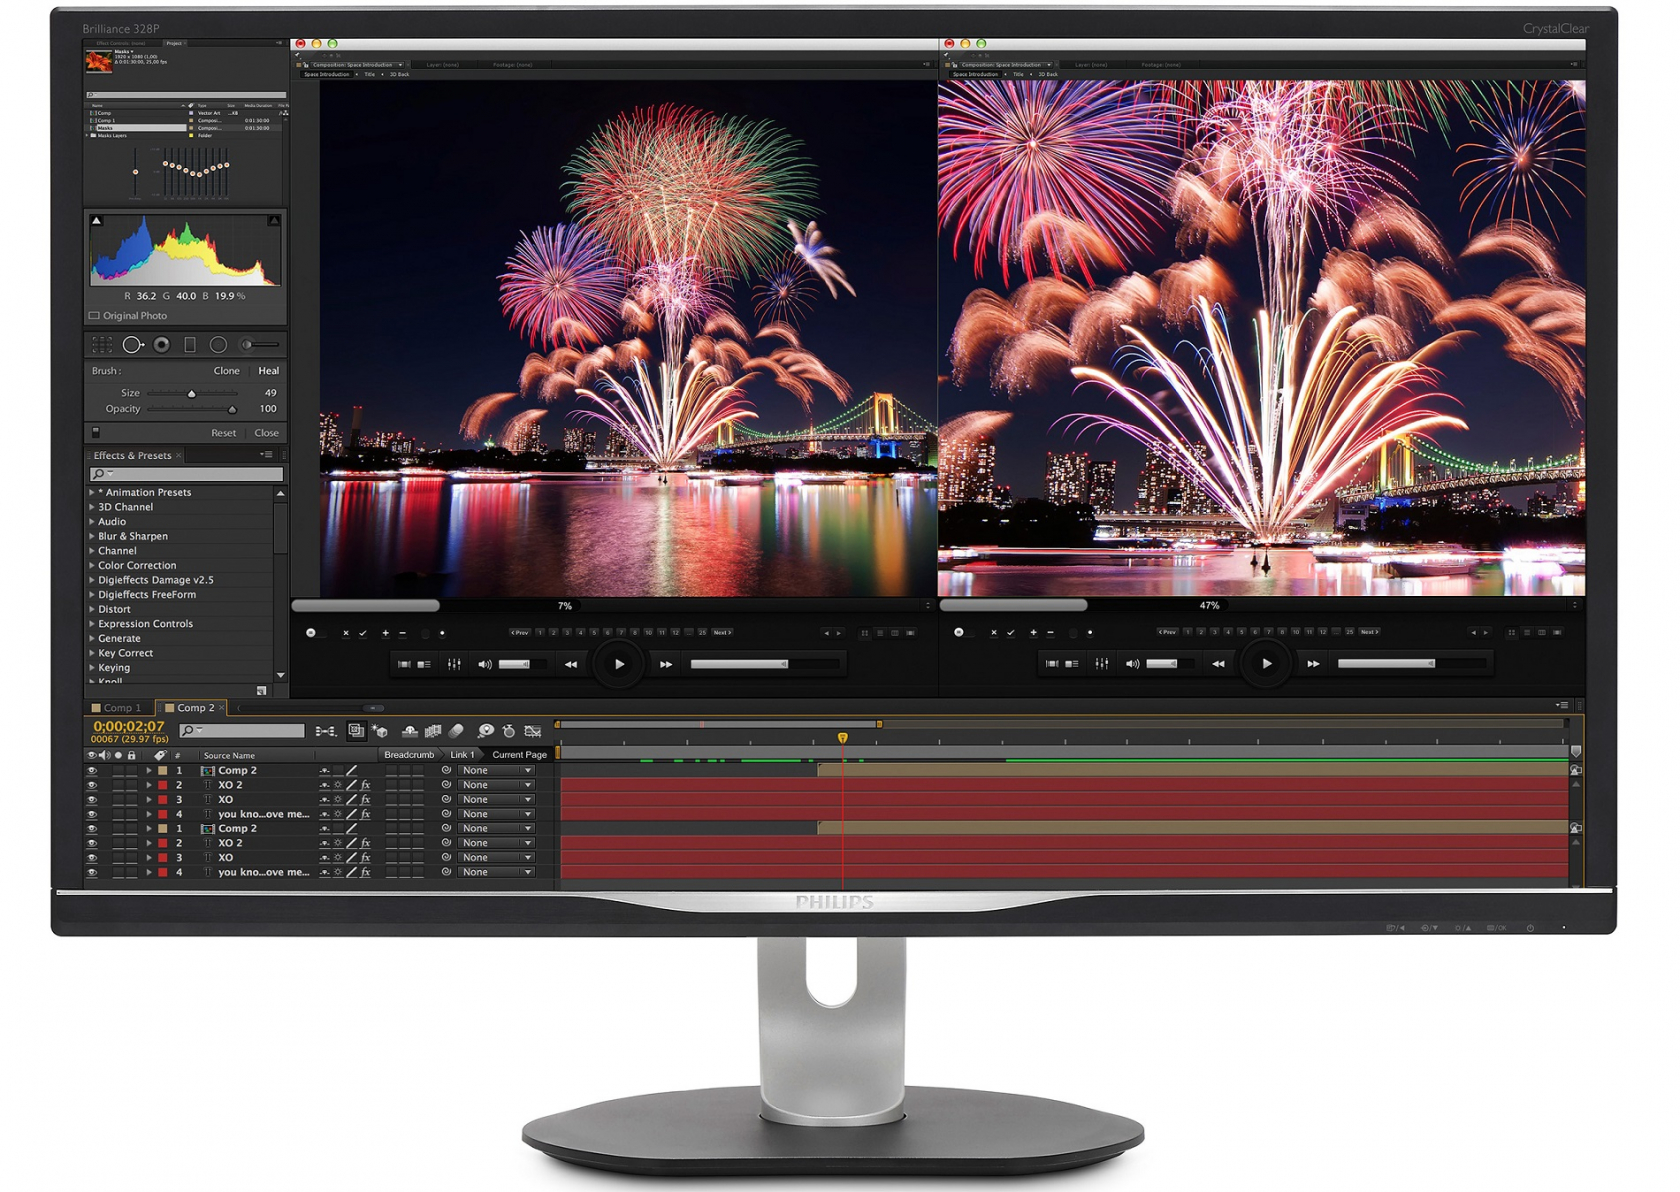 Philips' upcoming professional monitors feature USB-C and Gigabit Ethernet connectivity